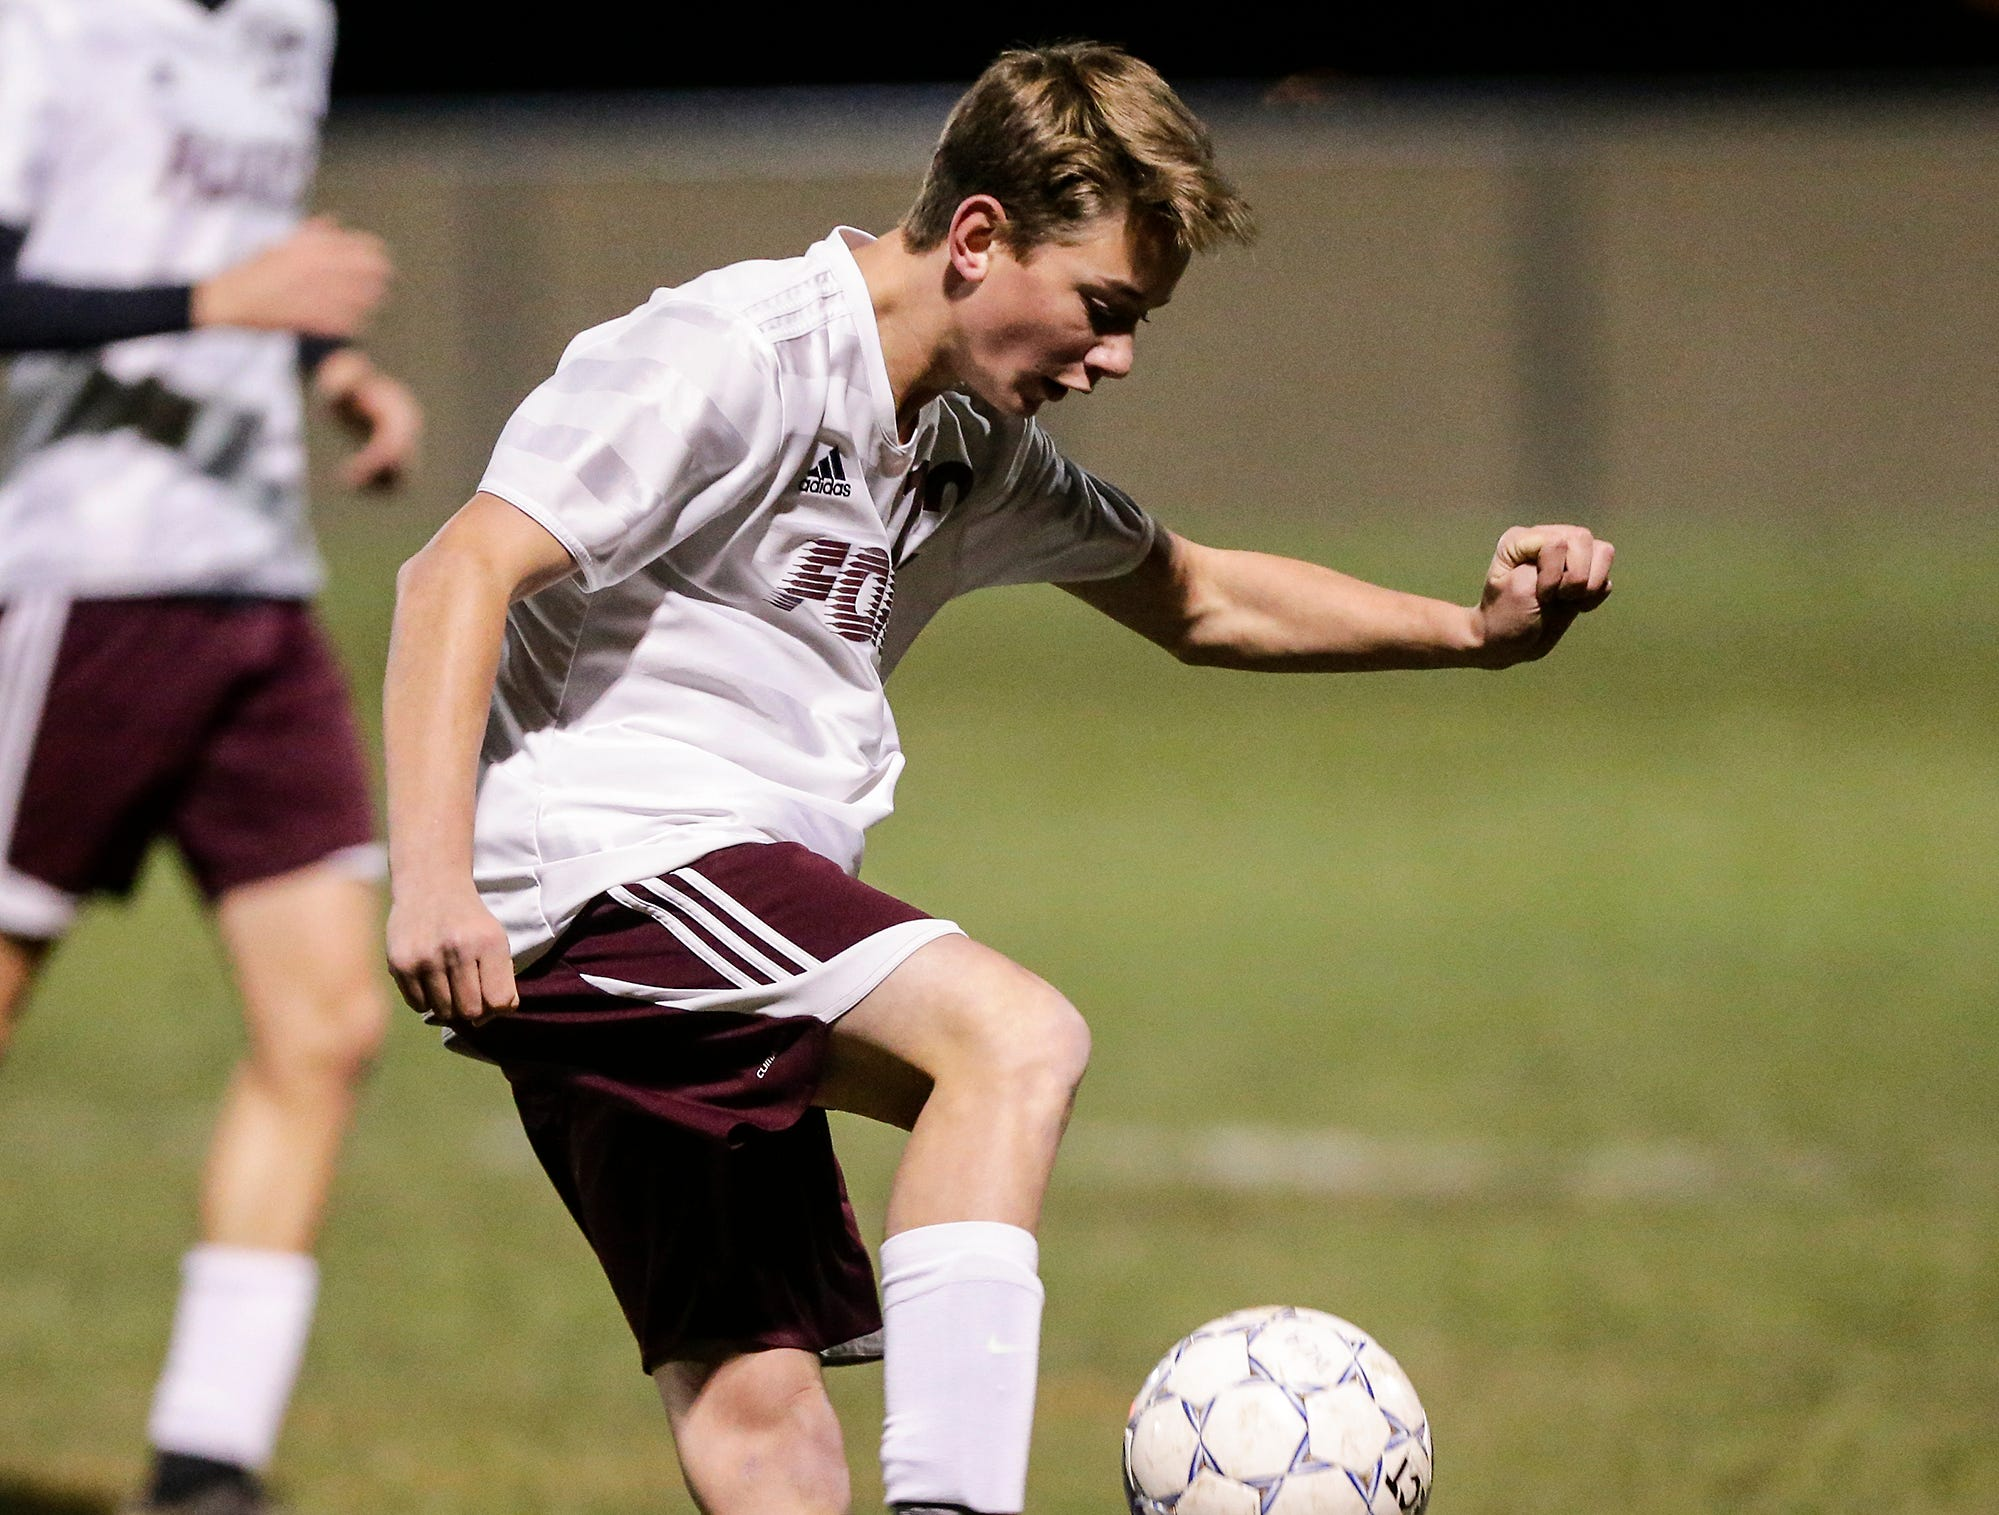 Omro High School soccer's Kaden Besaw gets the ball against Winnebago Lutheran Academy during their WIAA regional playoff game Thursday, October 18, 2018 in Fond du Lac, Wisconsin. Doug Raflik/USA TODAY NETWORK-Wisconsin